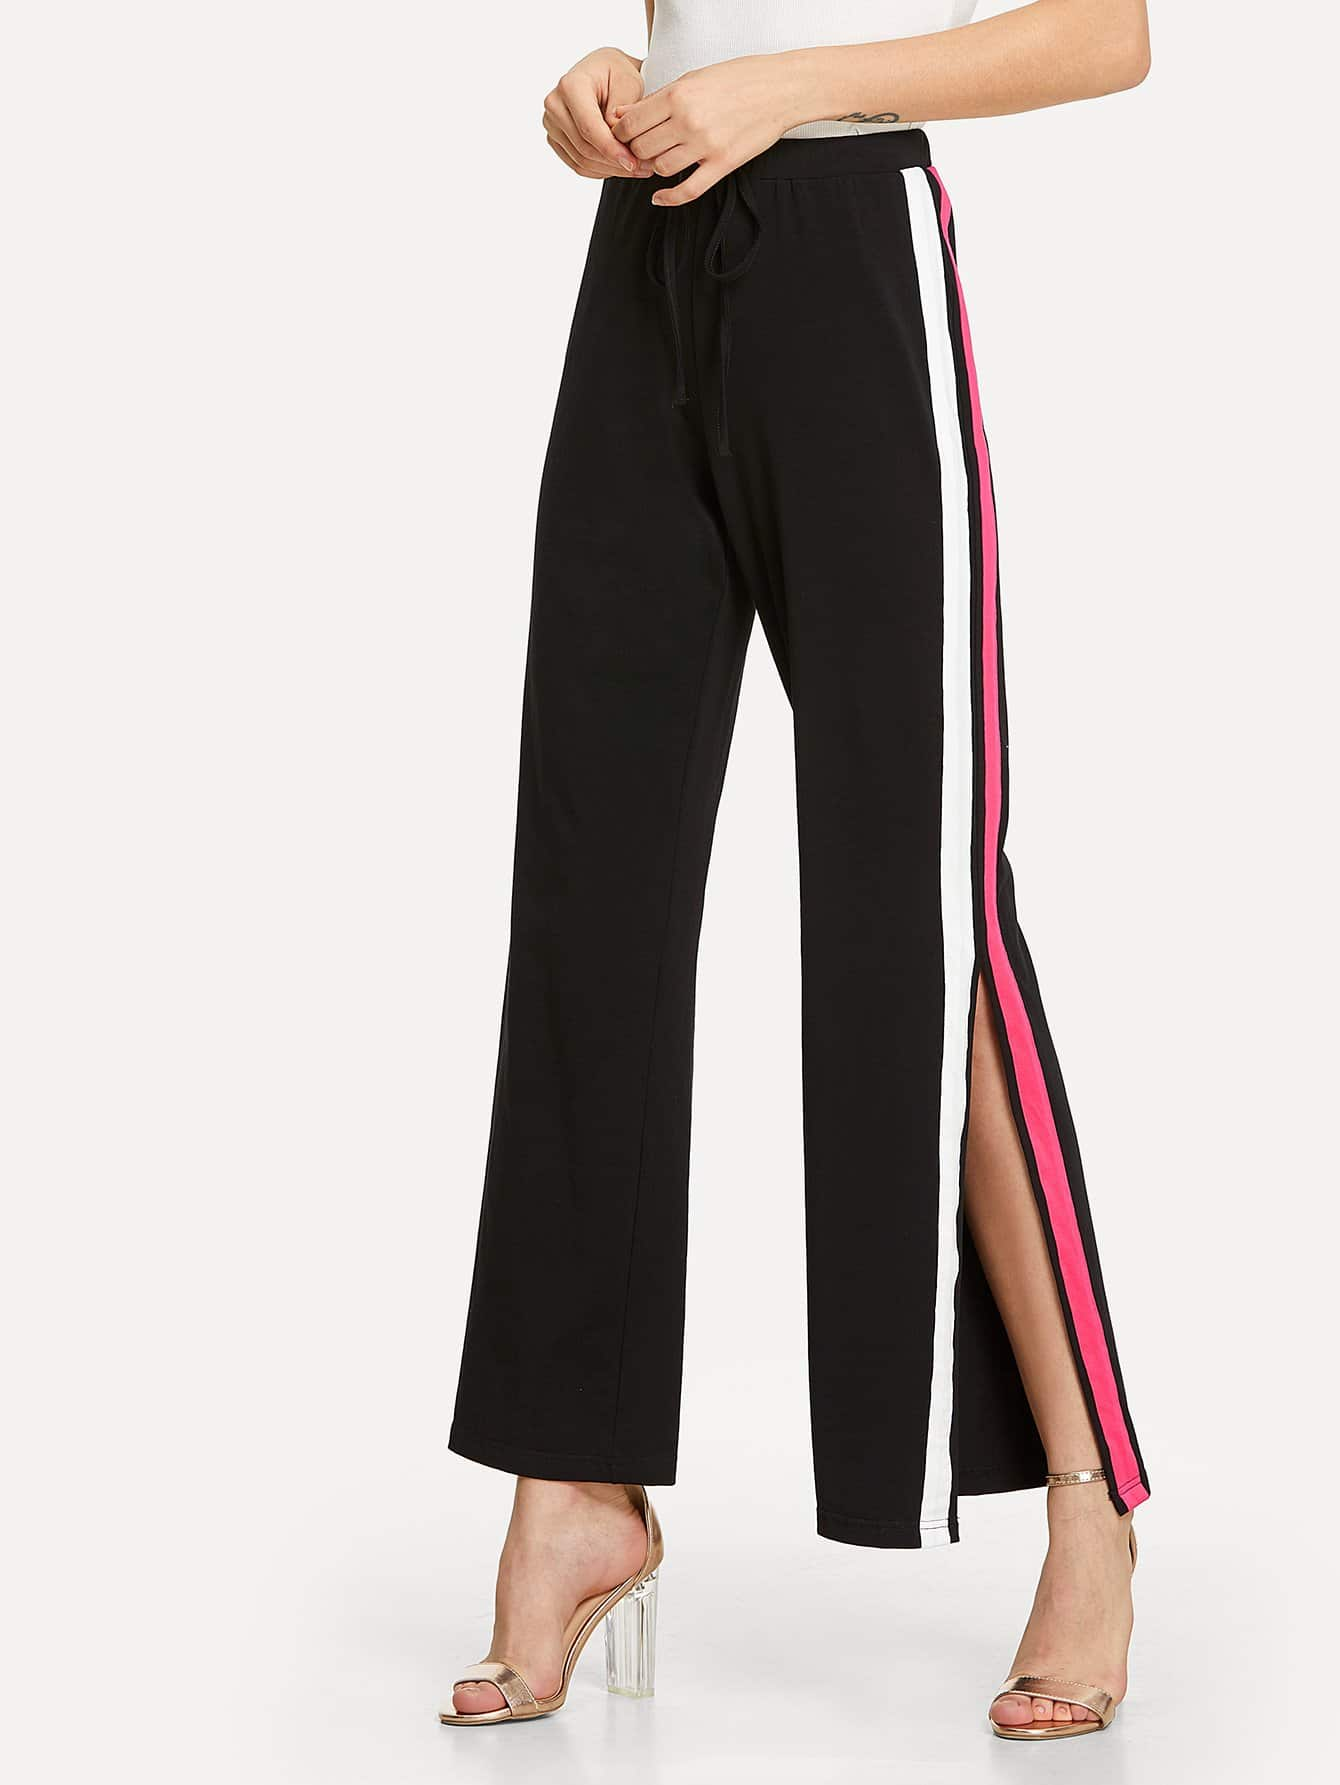 Stripe Slit Side Flare Hem Pants цена